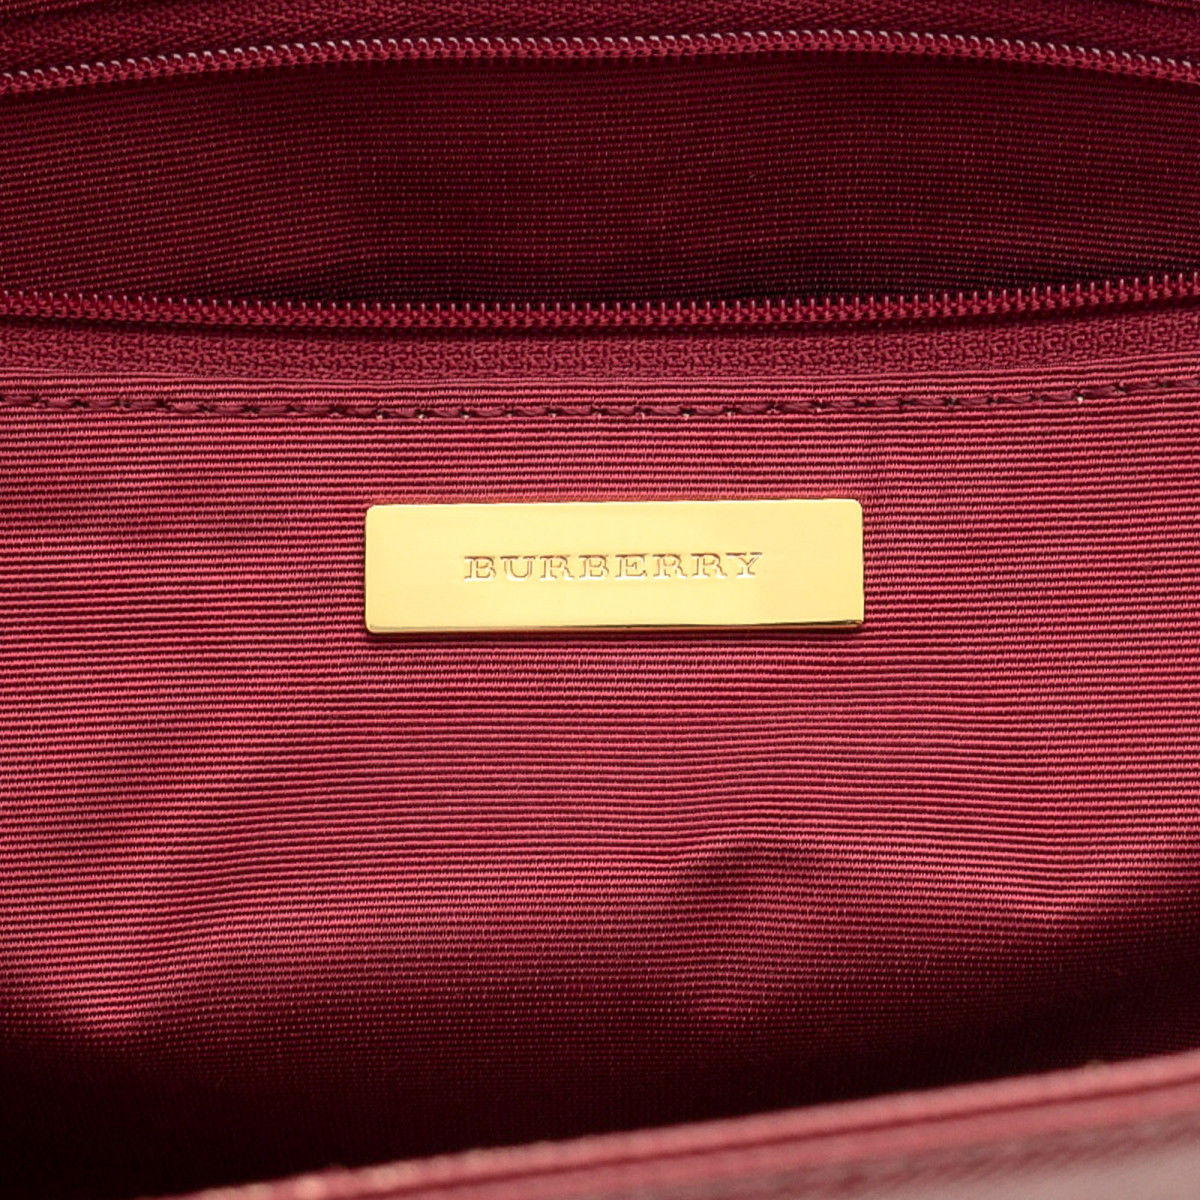 Burberry Haymarket Check Tote Bag. Free Shipping. LXRandCo guarantees this  is an authentic vintage Burberry Bag tote. This stylish work bag was crafted  ... cb1f261685